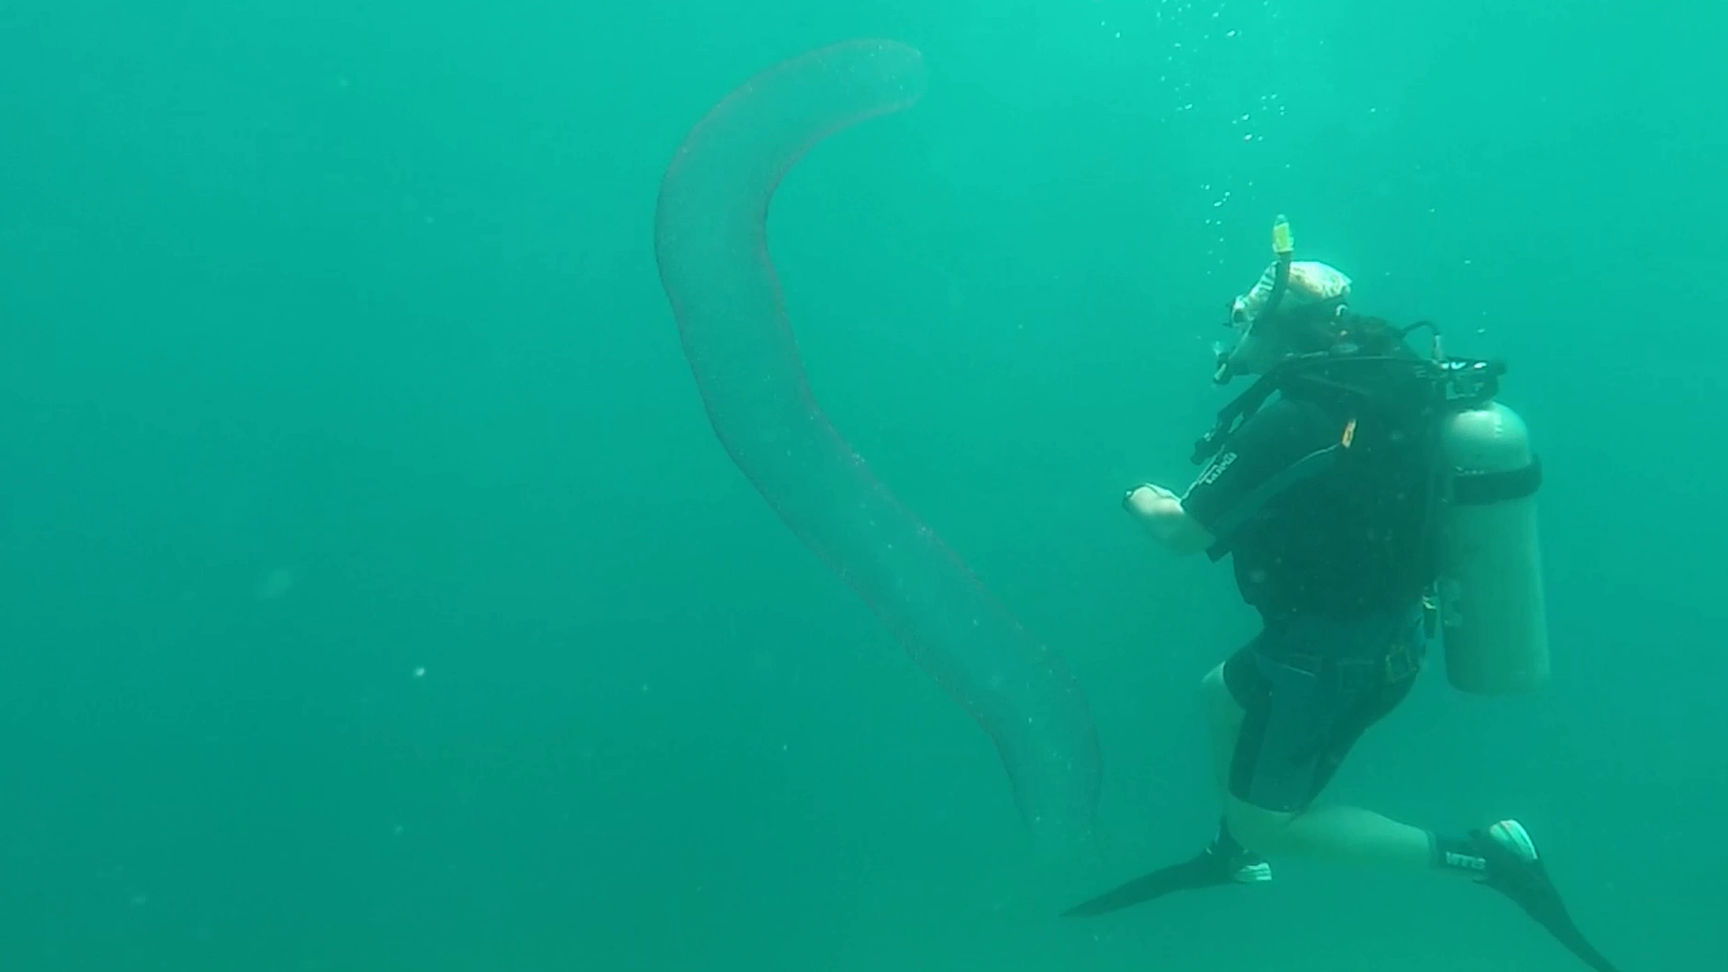 Divers Baffled When They Come Across 'Alien-Like' Sea Creature